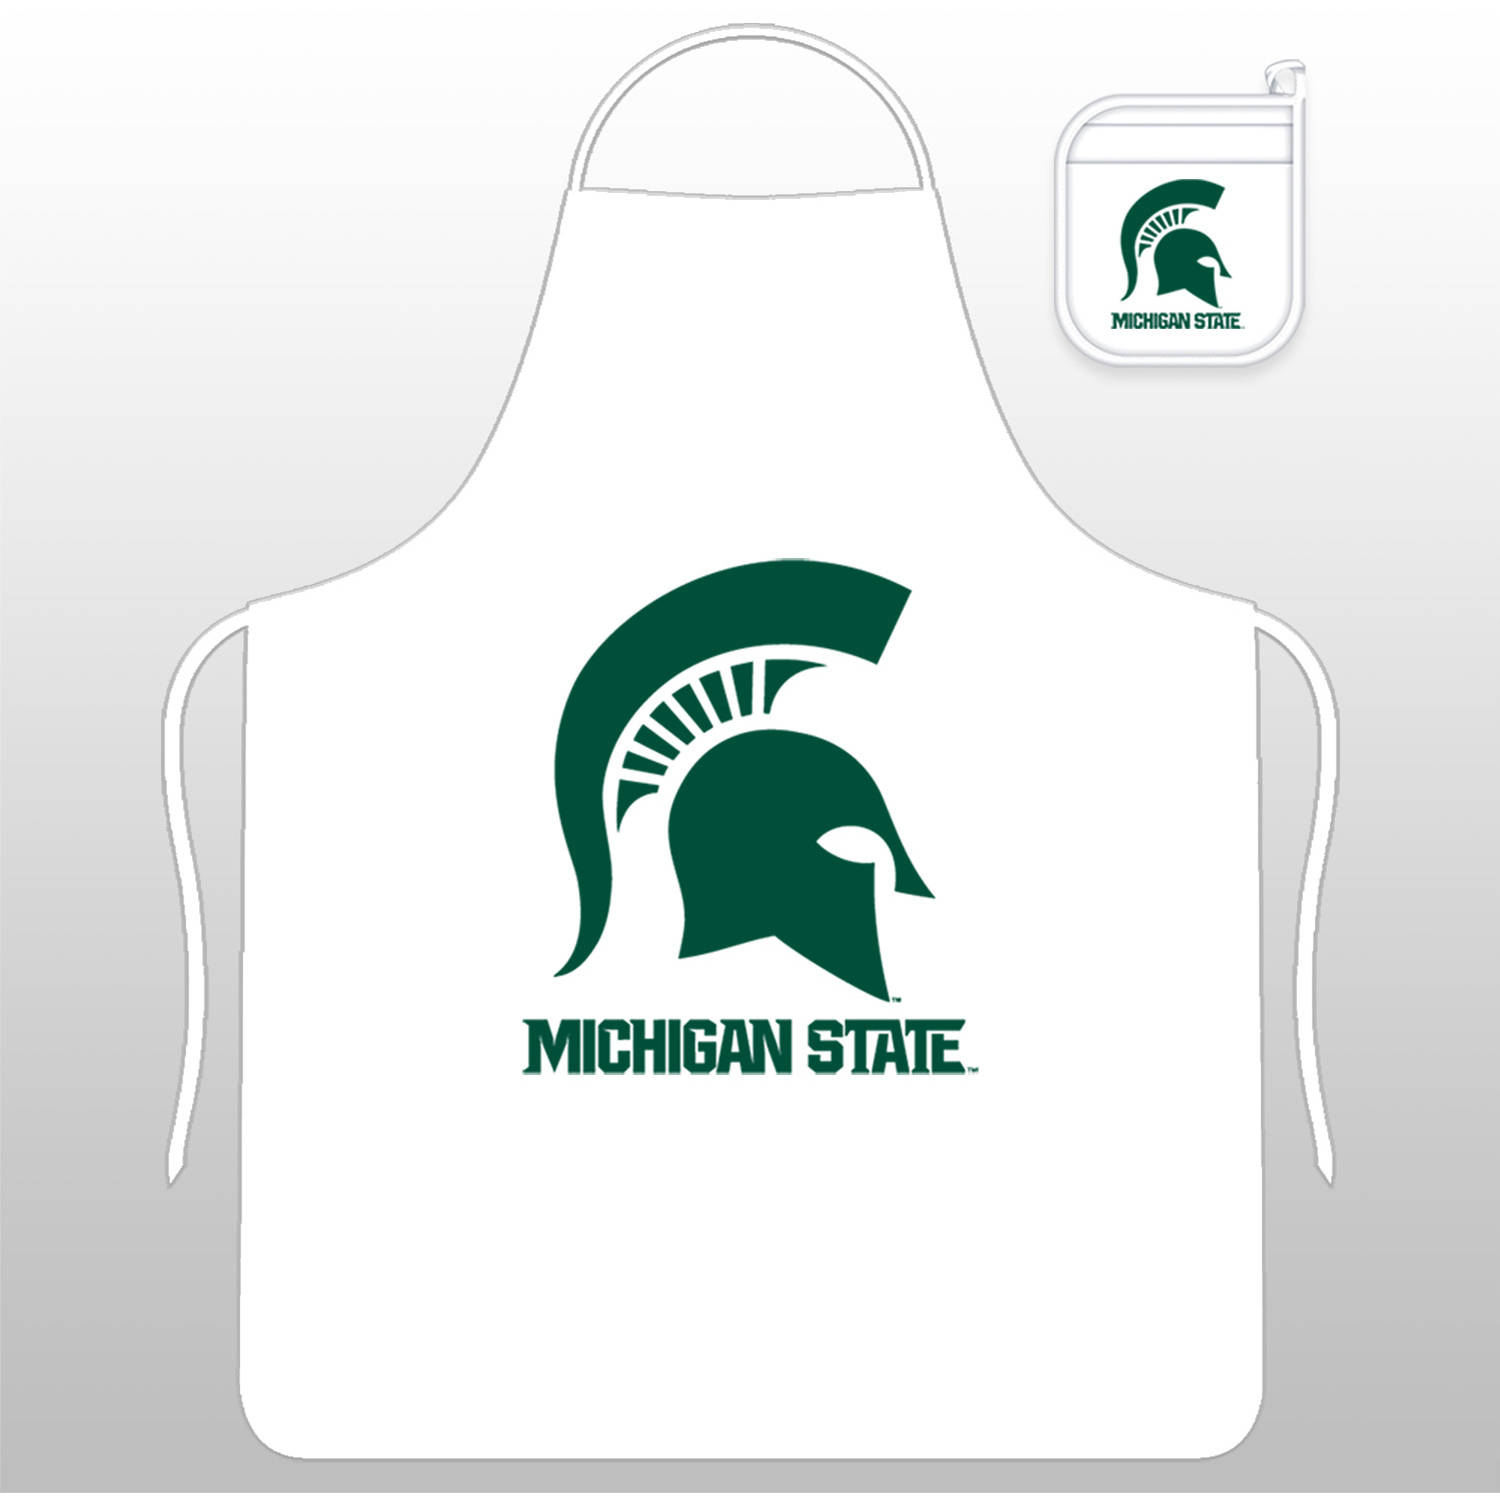 NCAA Michigan State Tail Gate Kit with Apron and Mitt